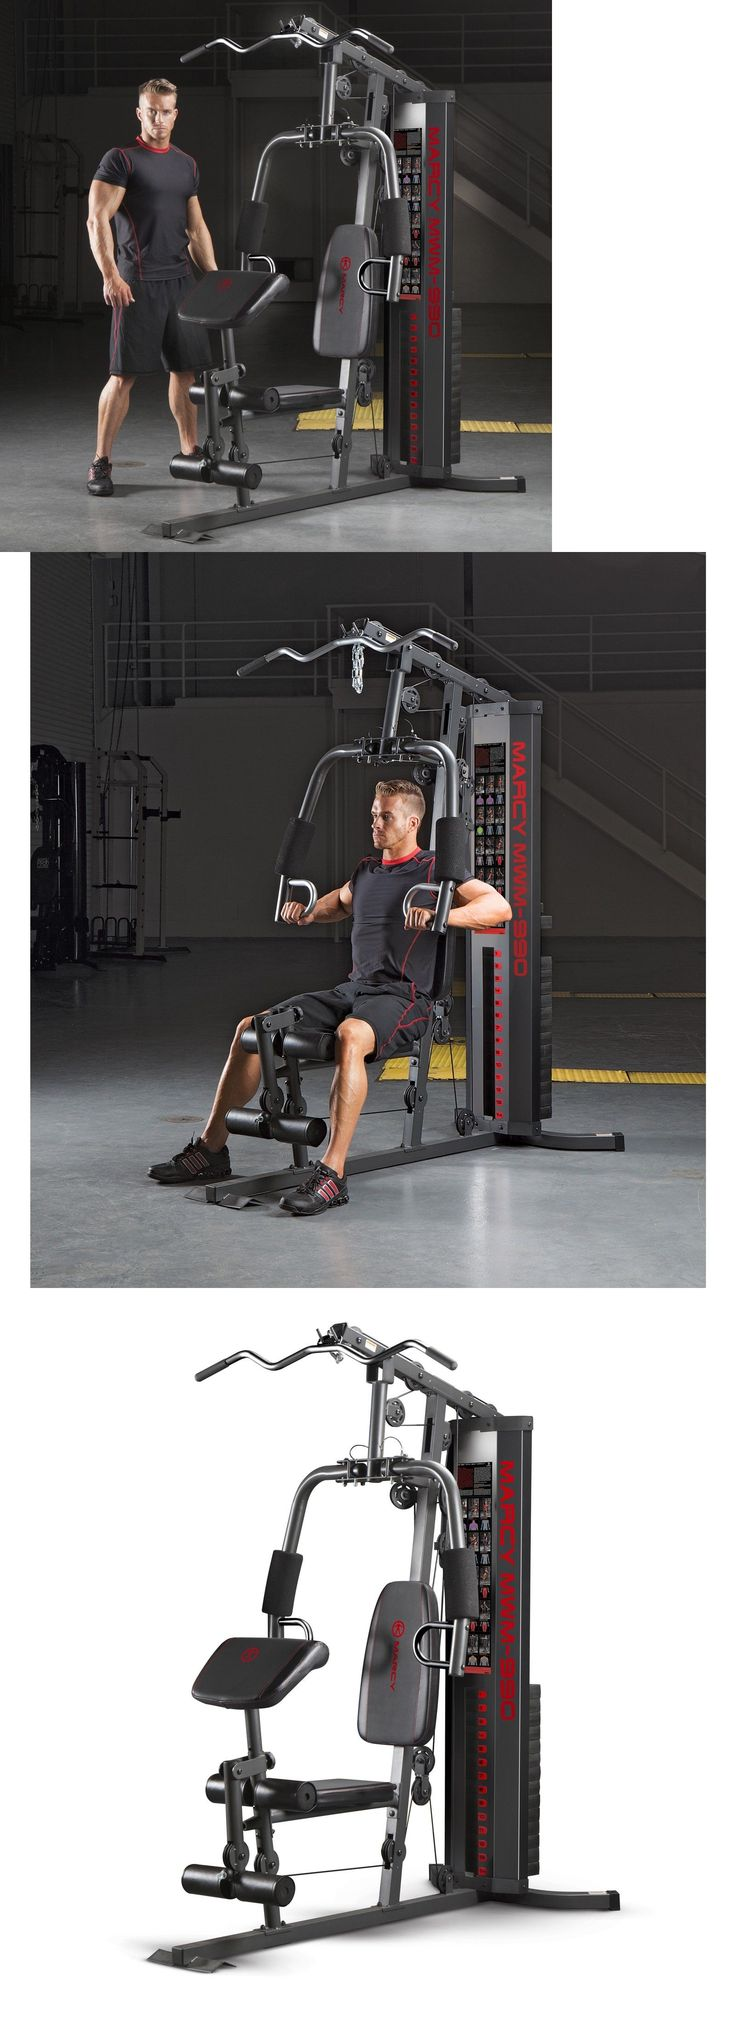 Home Gyms 158923: Home Gym Machine Equipment Fitness Exercise Workout Total Body Strength Training BUY IT NOW ONLY: $493.99